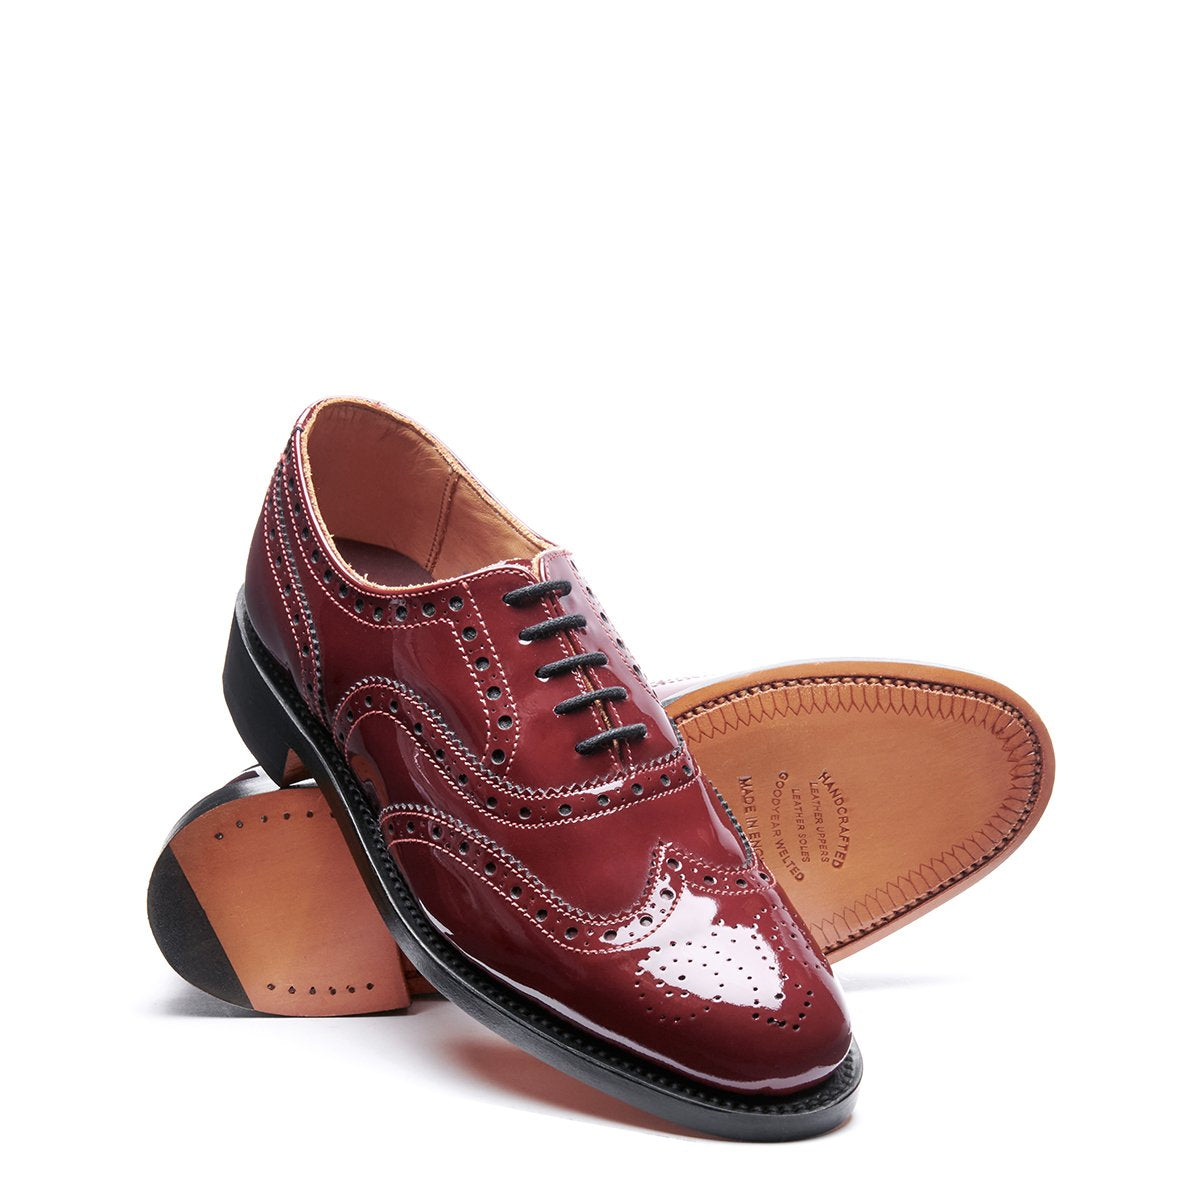 NPS Charlotte Oxford Brogue Shoe - Red Patent Pink Stitching